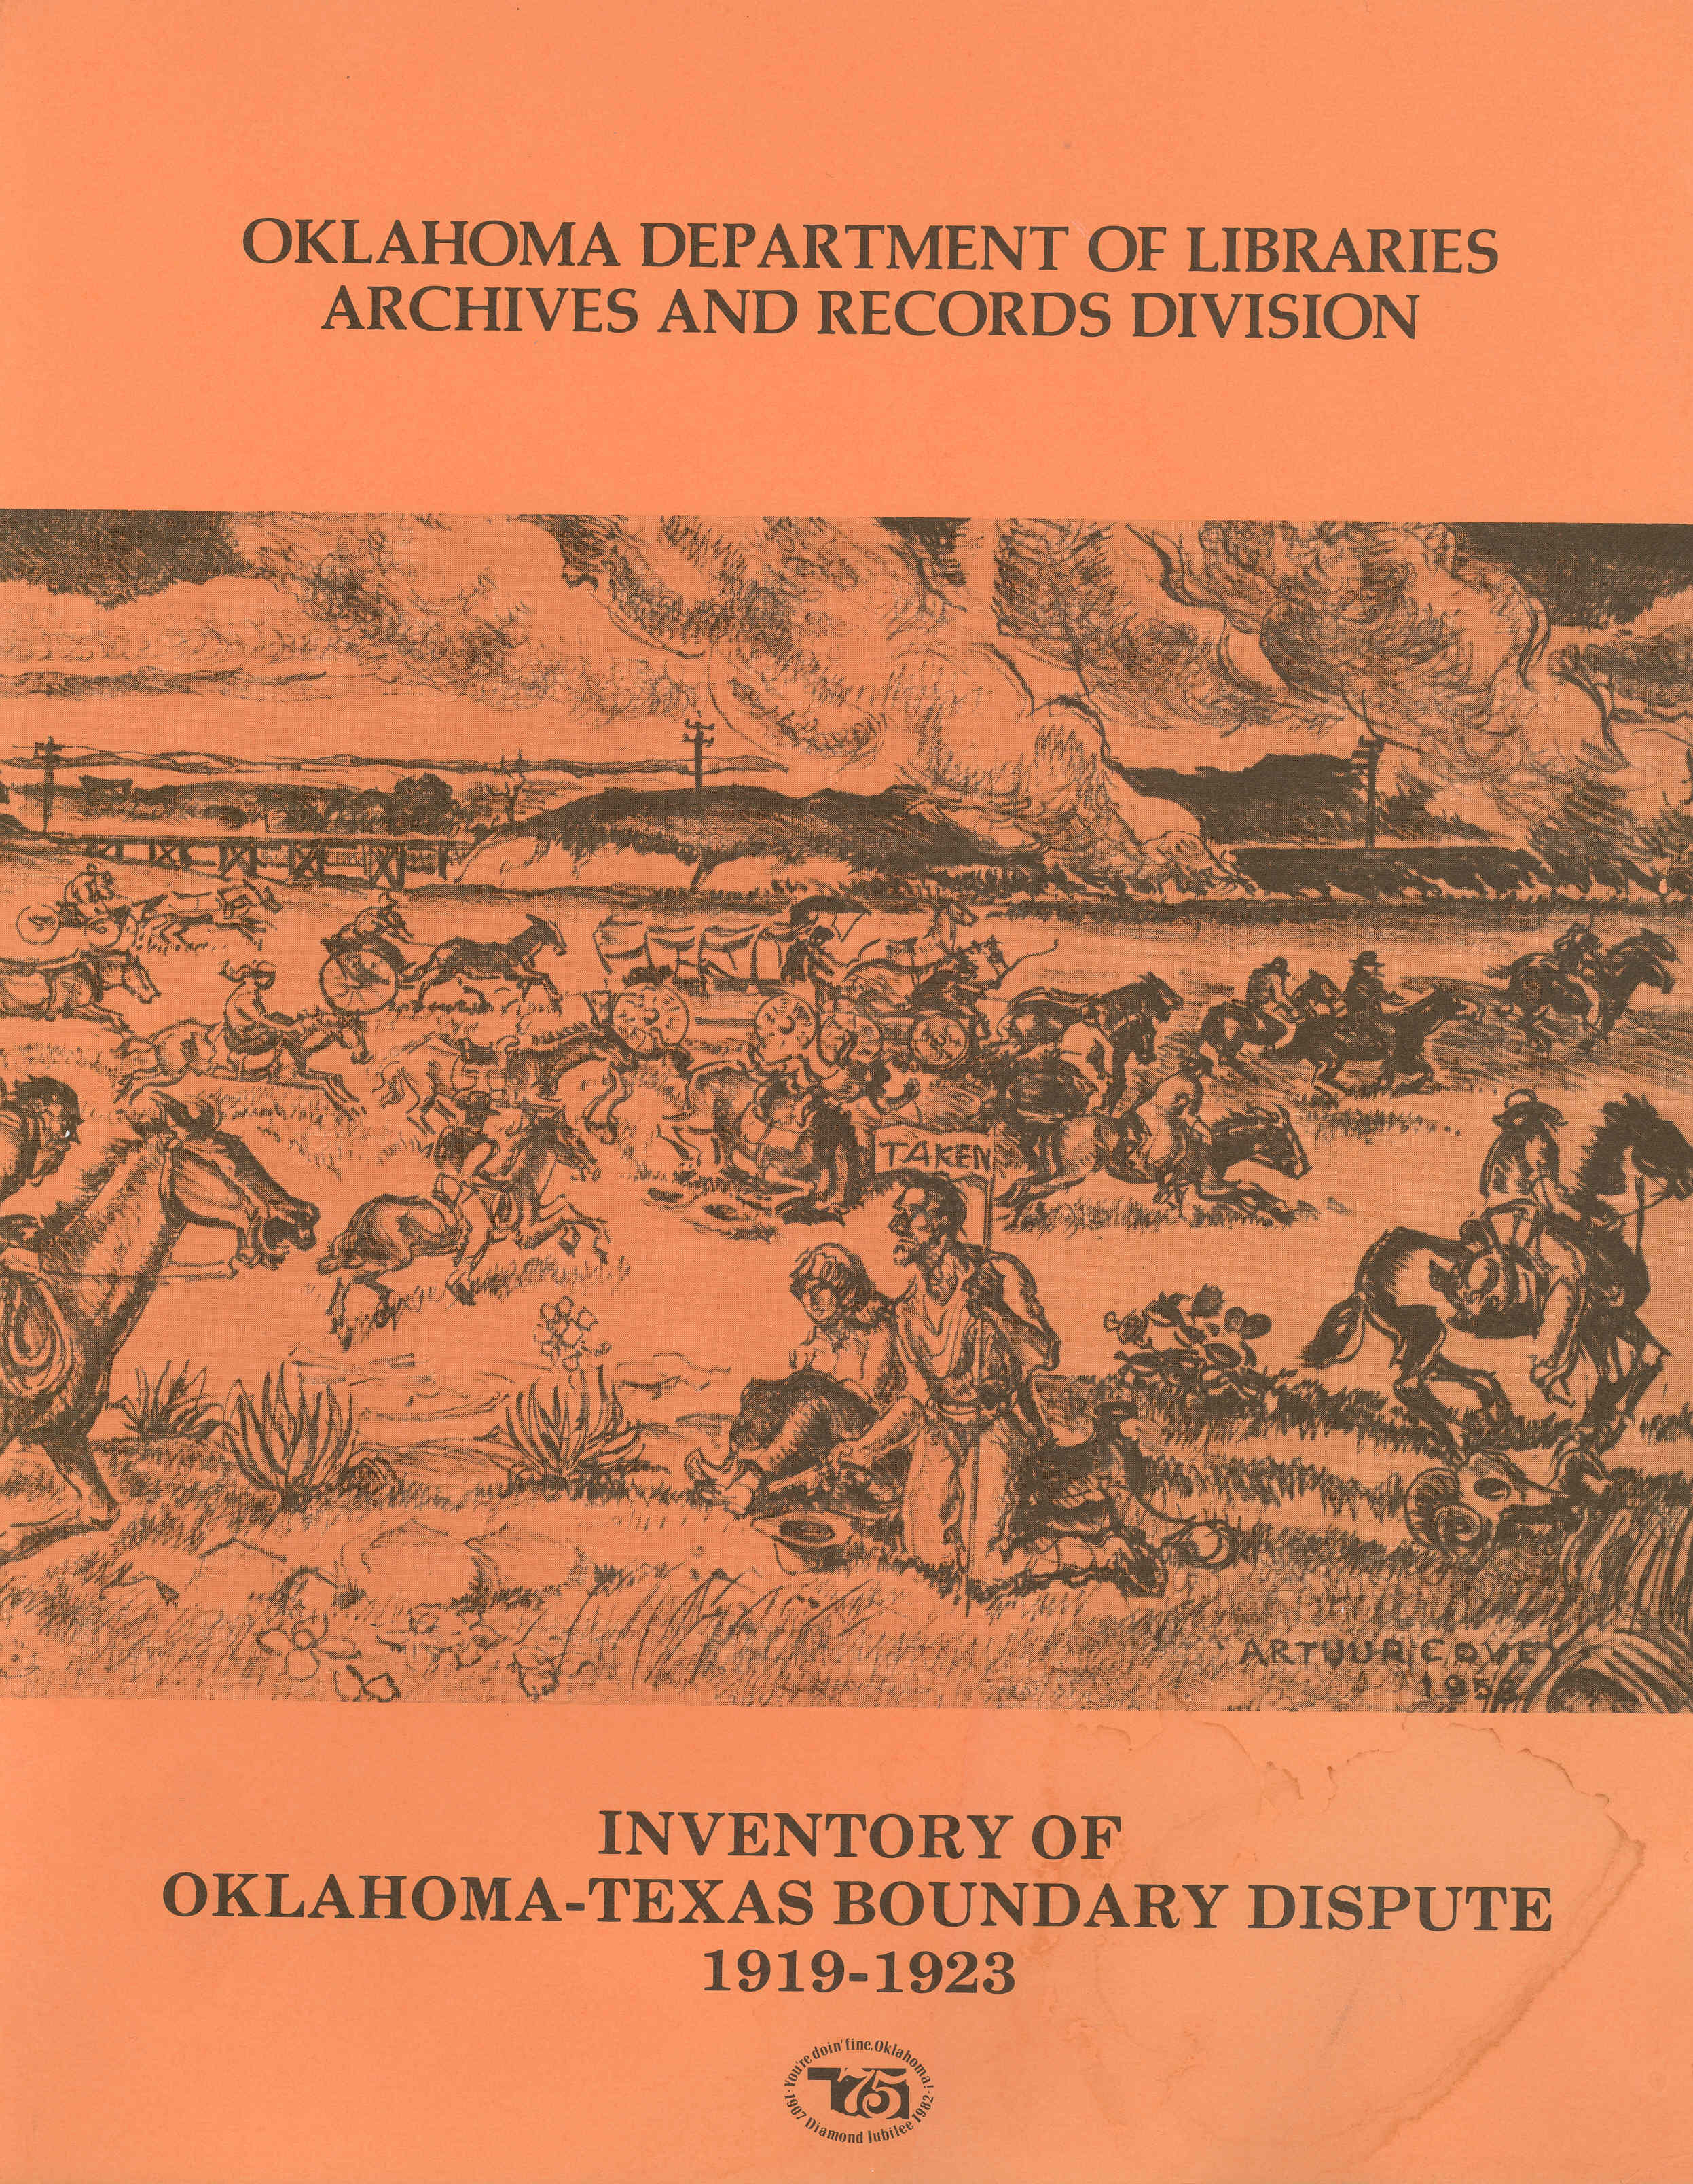 Oklahoma Texas Boundary Dispute Finding Aid